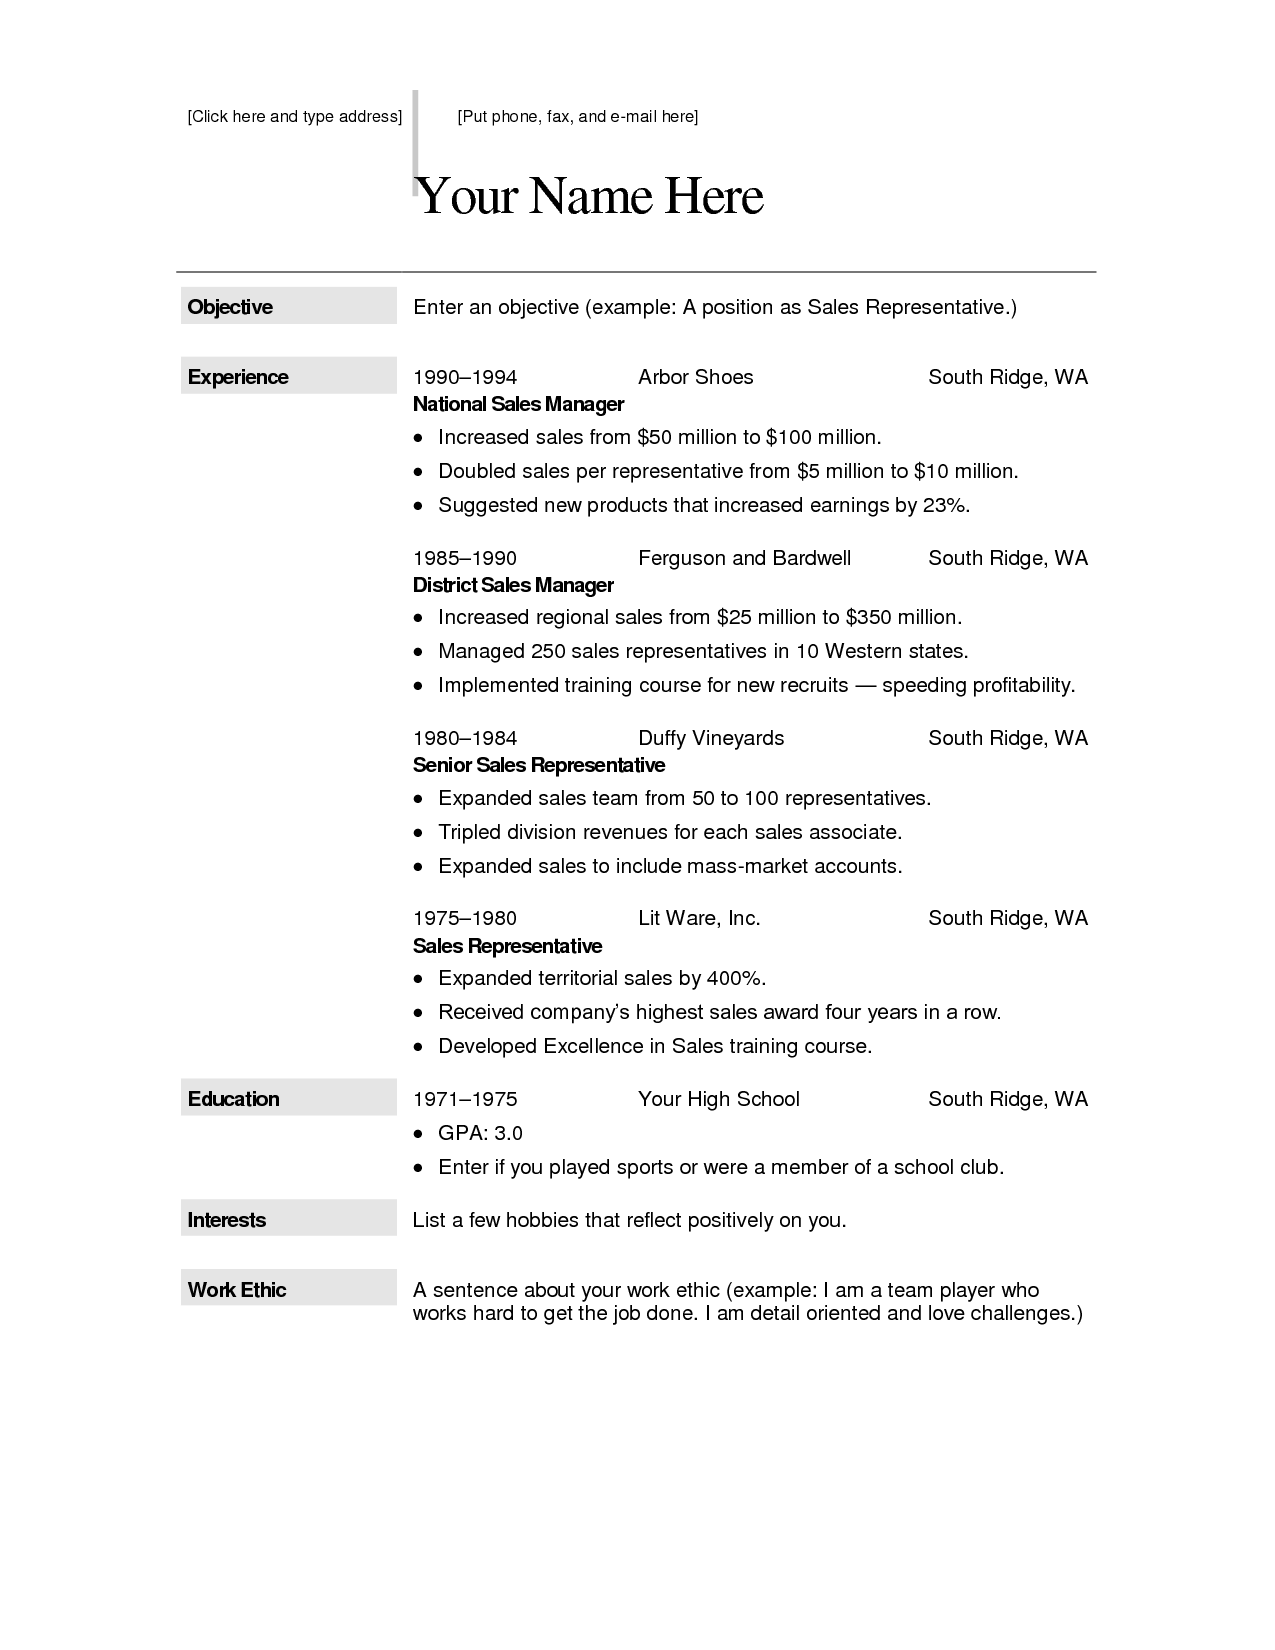 free creative resume templates for macfree creative resume templates for mac modern resume template - Free Creative Resume Templates For Mac